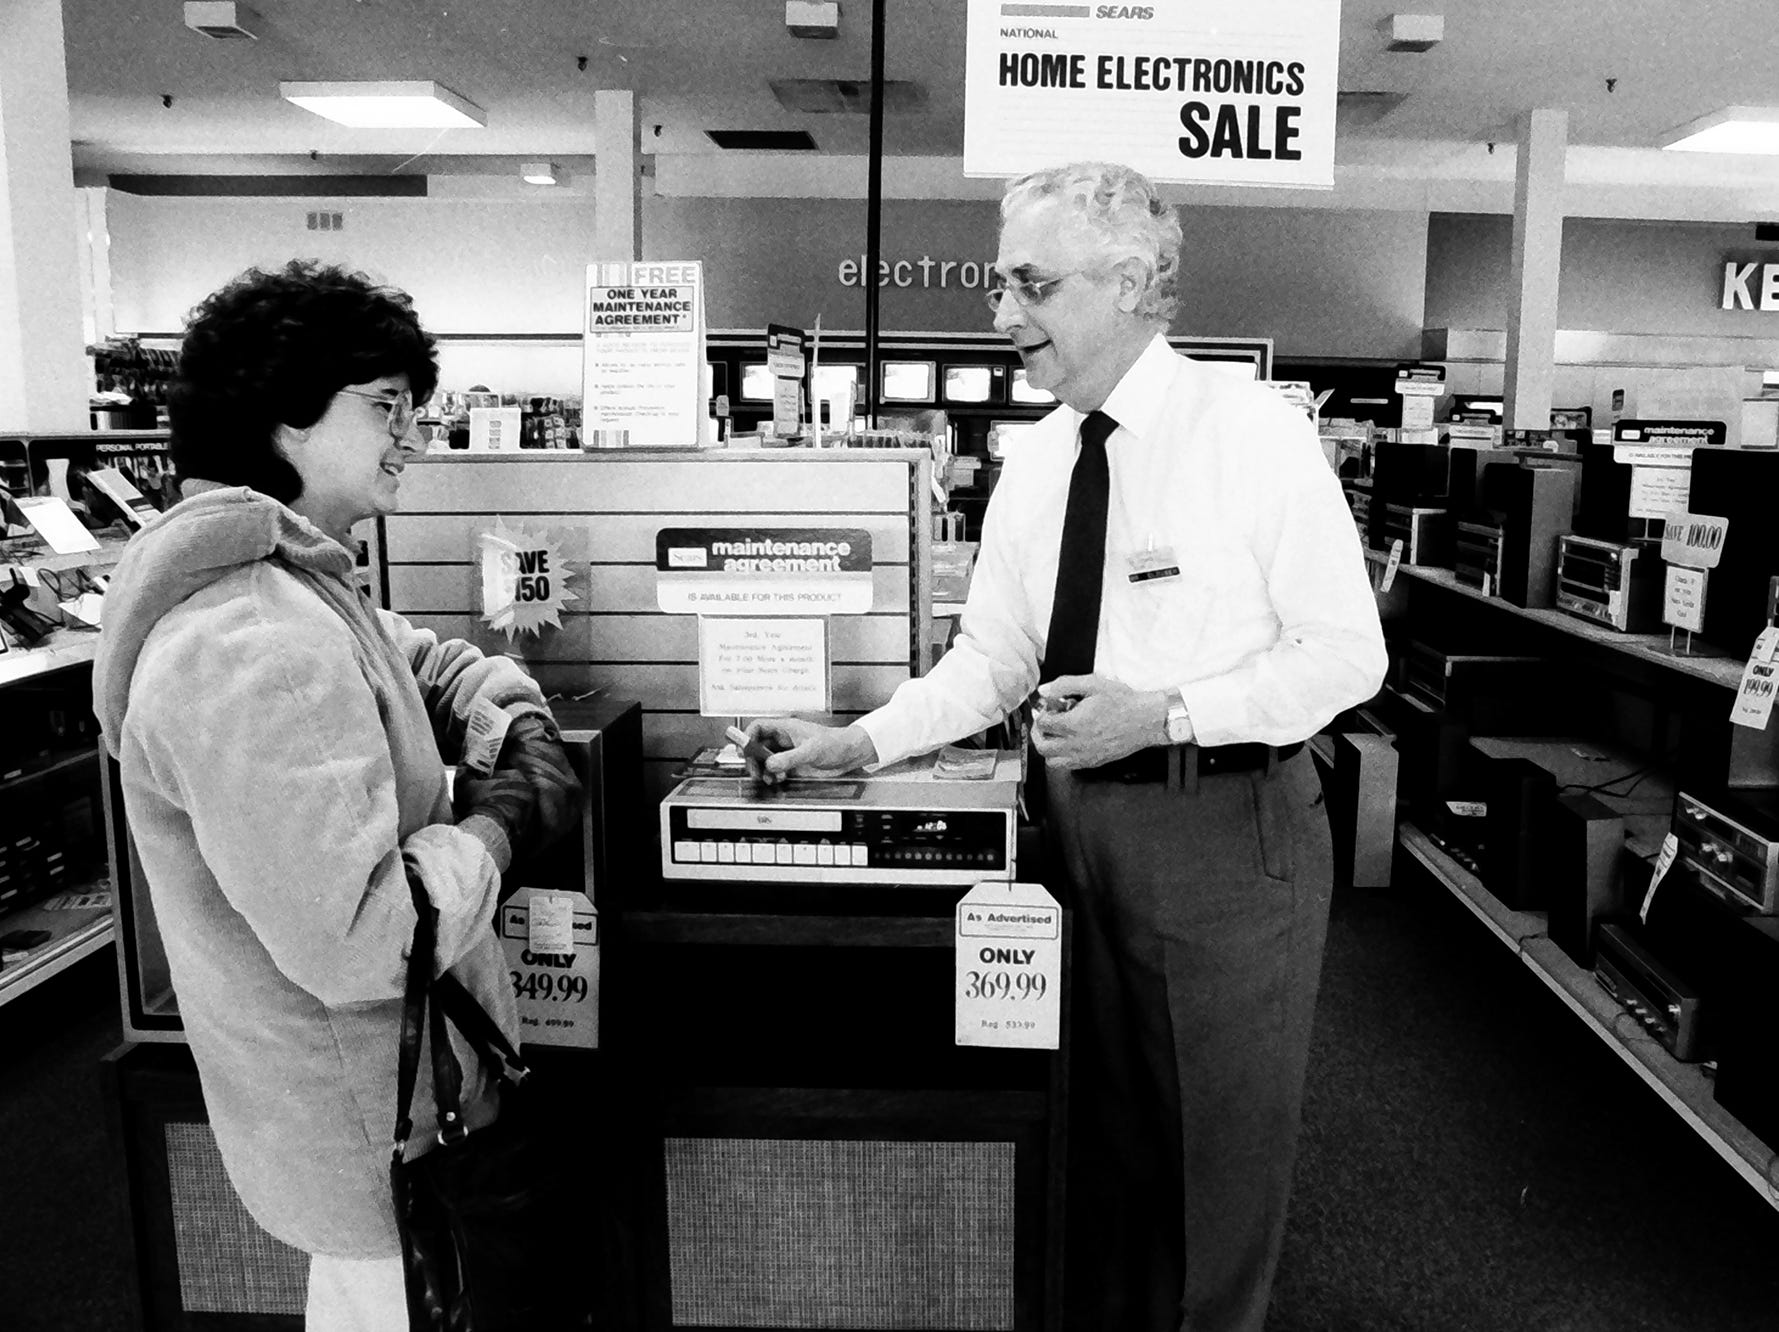 In 1985, Sears was a big name and you could buy a VCR on sale for $369.